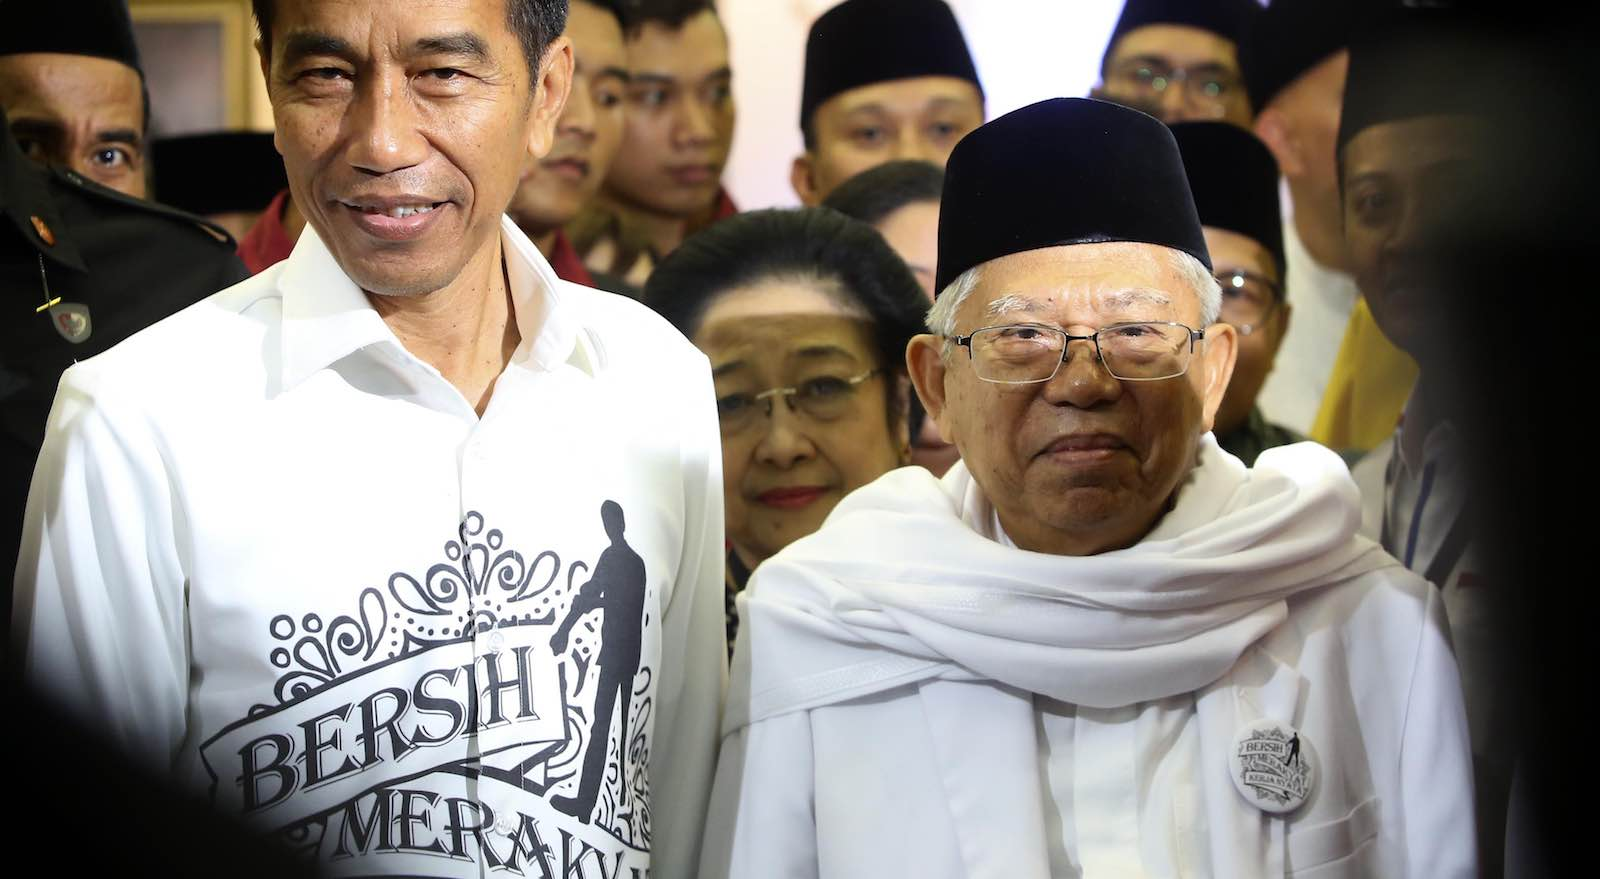 Indonesia's President Joko Widodo registers with Ma'ruf Amin as running mate for the April 2019 presidential contest, 10 August (Photo: Jefri Tarigan via Getty)